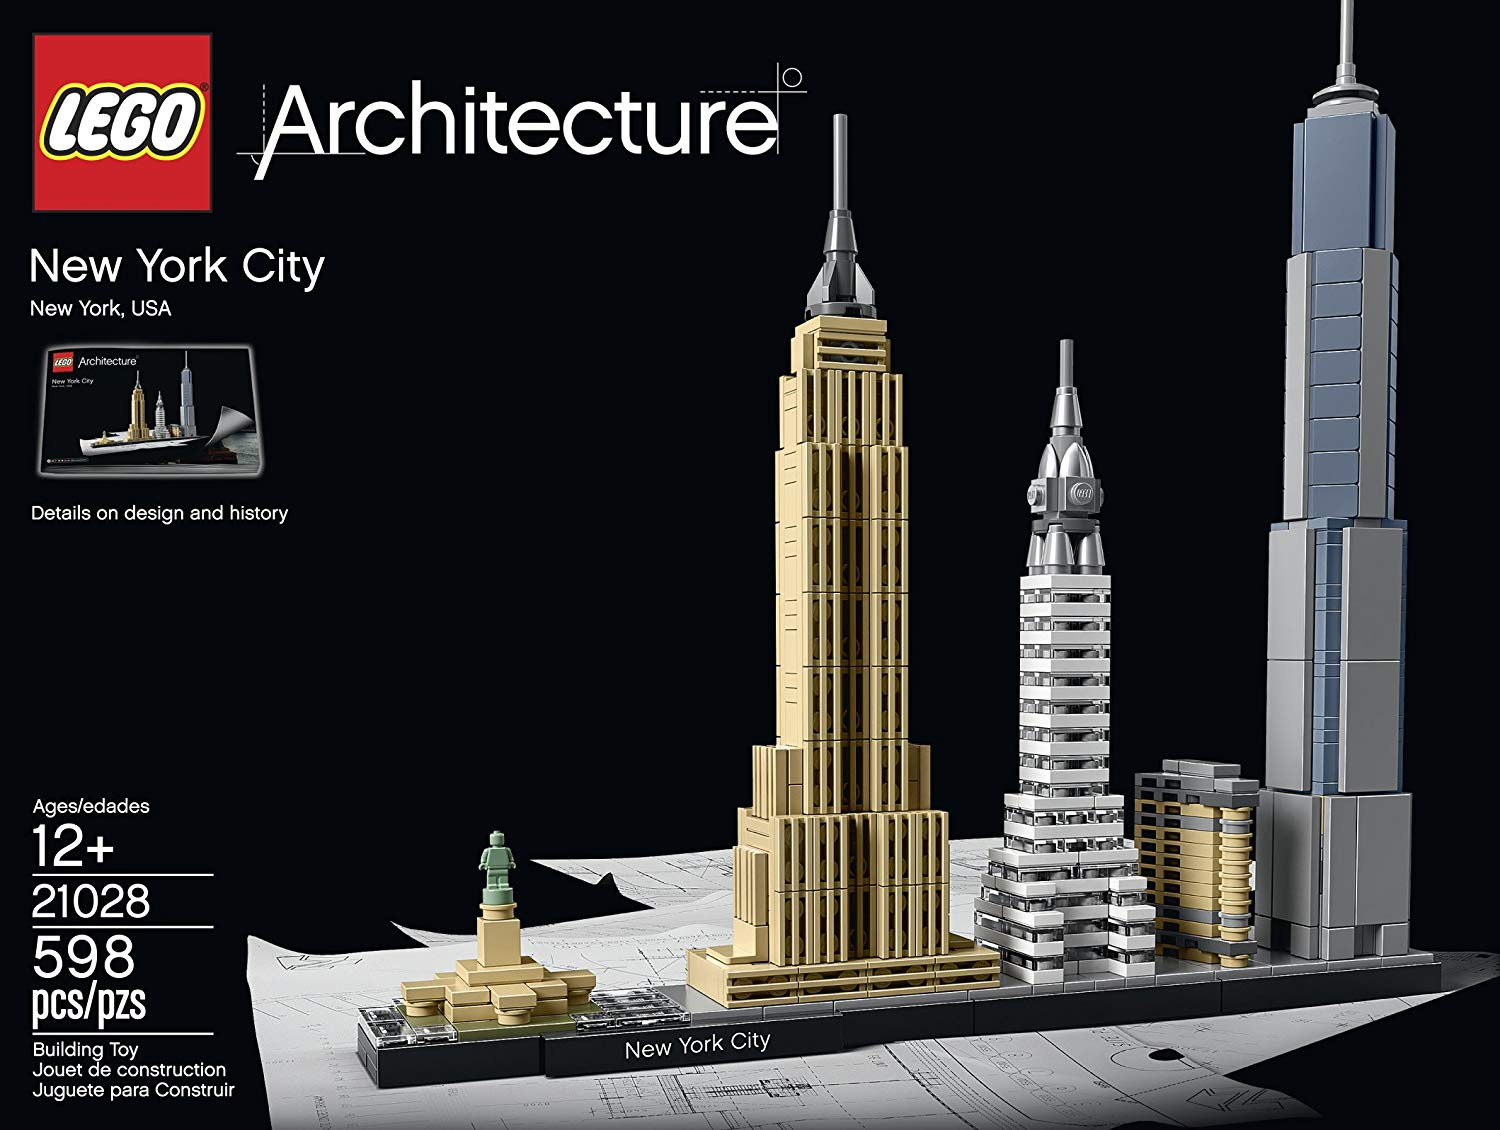 LEGO Architecture 21028 New York City on Amazon